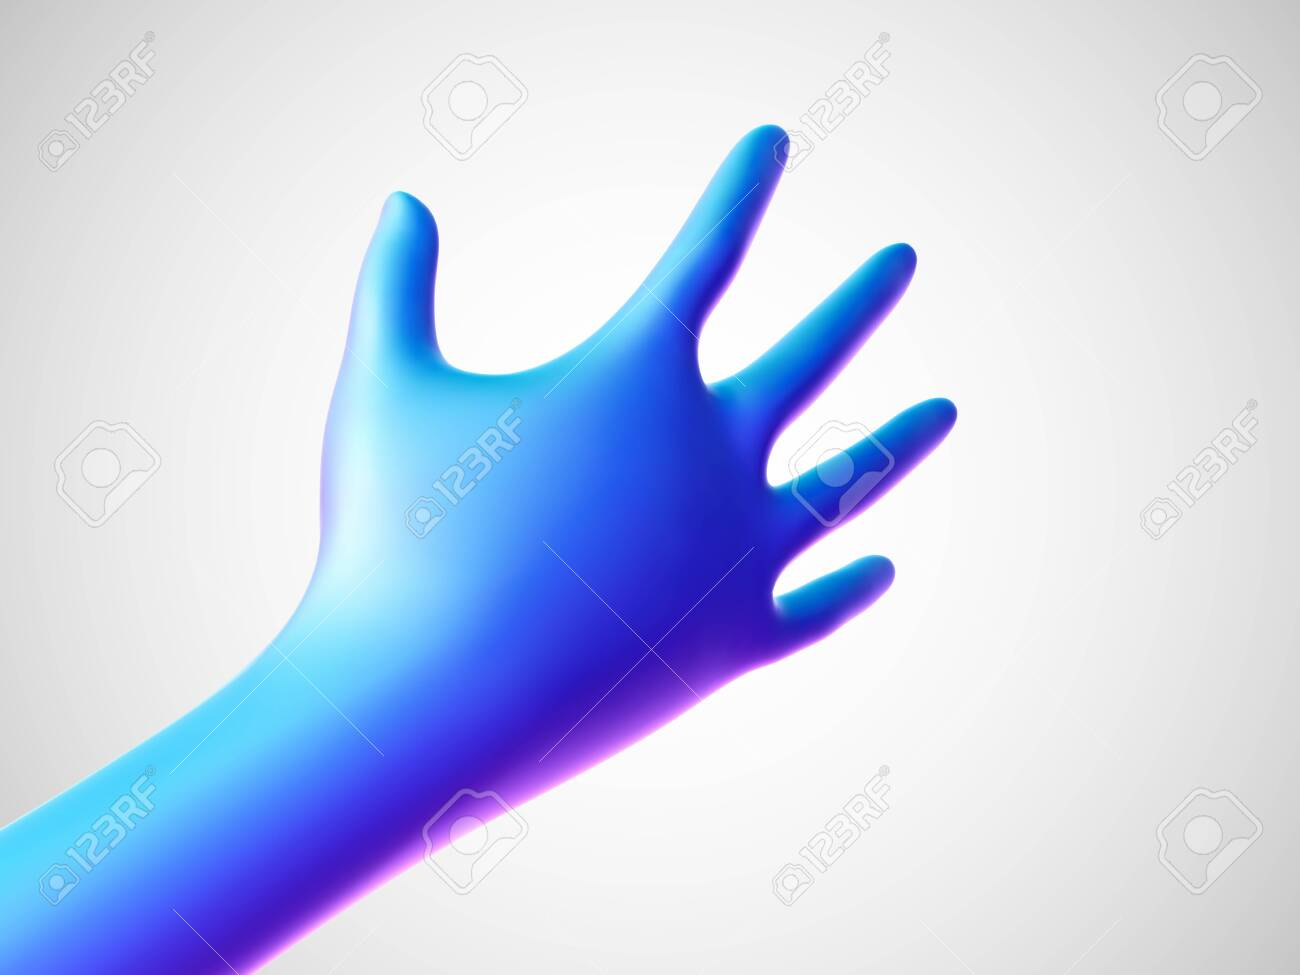 3D blue hand offering for handshake on white background. Concept of financial support, teamwork and business partnership. Vector illustration of shaking human hand. - 145938104